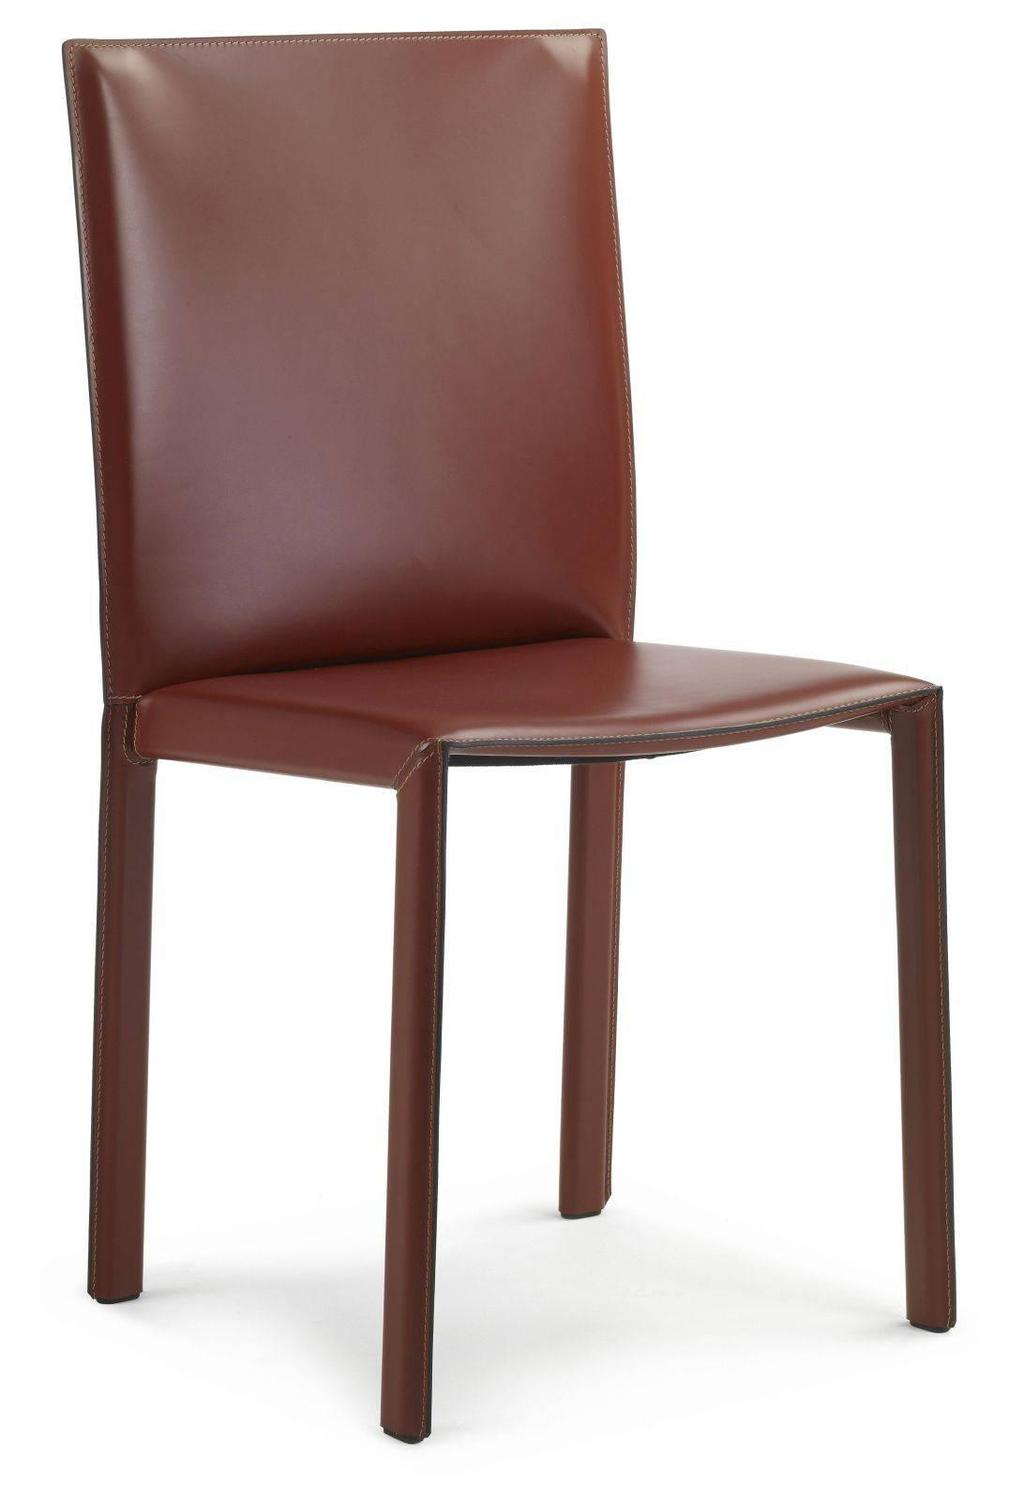 Lc03 italian leather chair modern design made in italy for Chair design leather